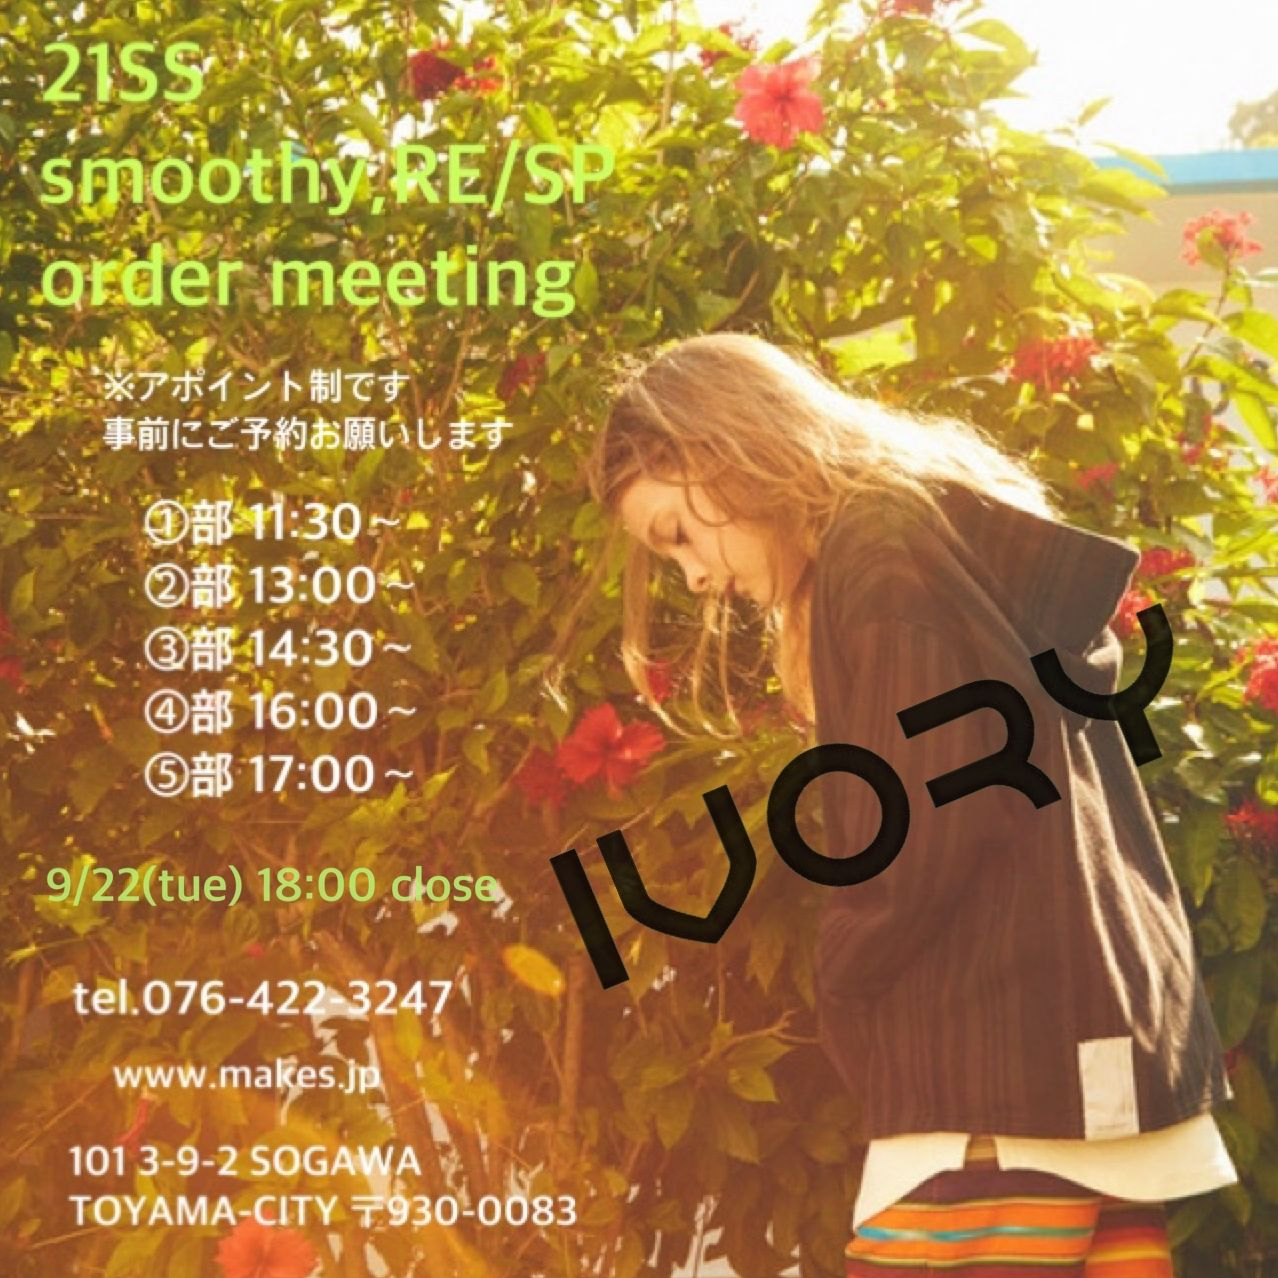 ★ 21SS smoothy RE/SP order meeting ★の写真